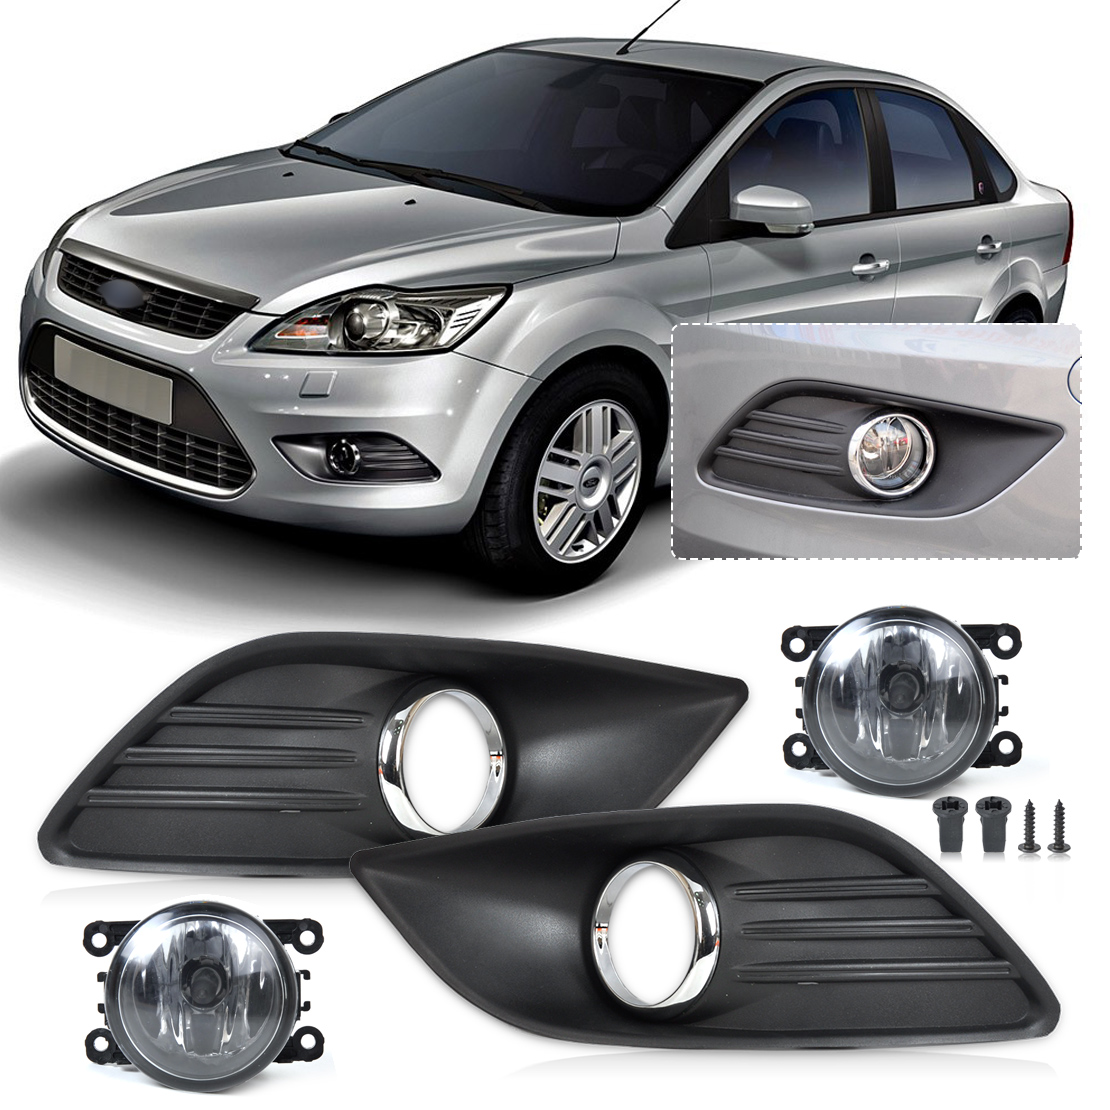 DWCX 2pcs Front Left Right Side Lower Bumper Fog Light Grille 2pcs Lamp Kit For Ford